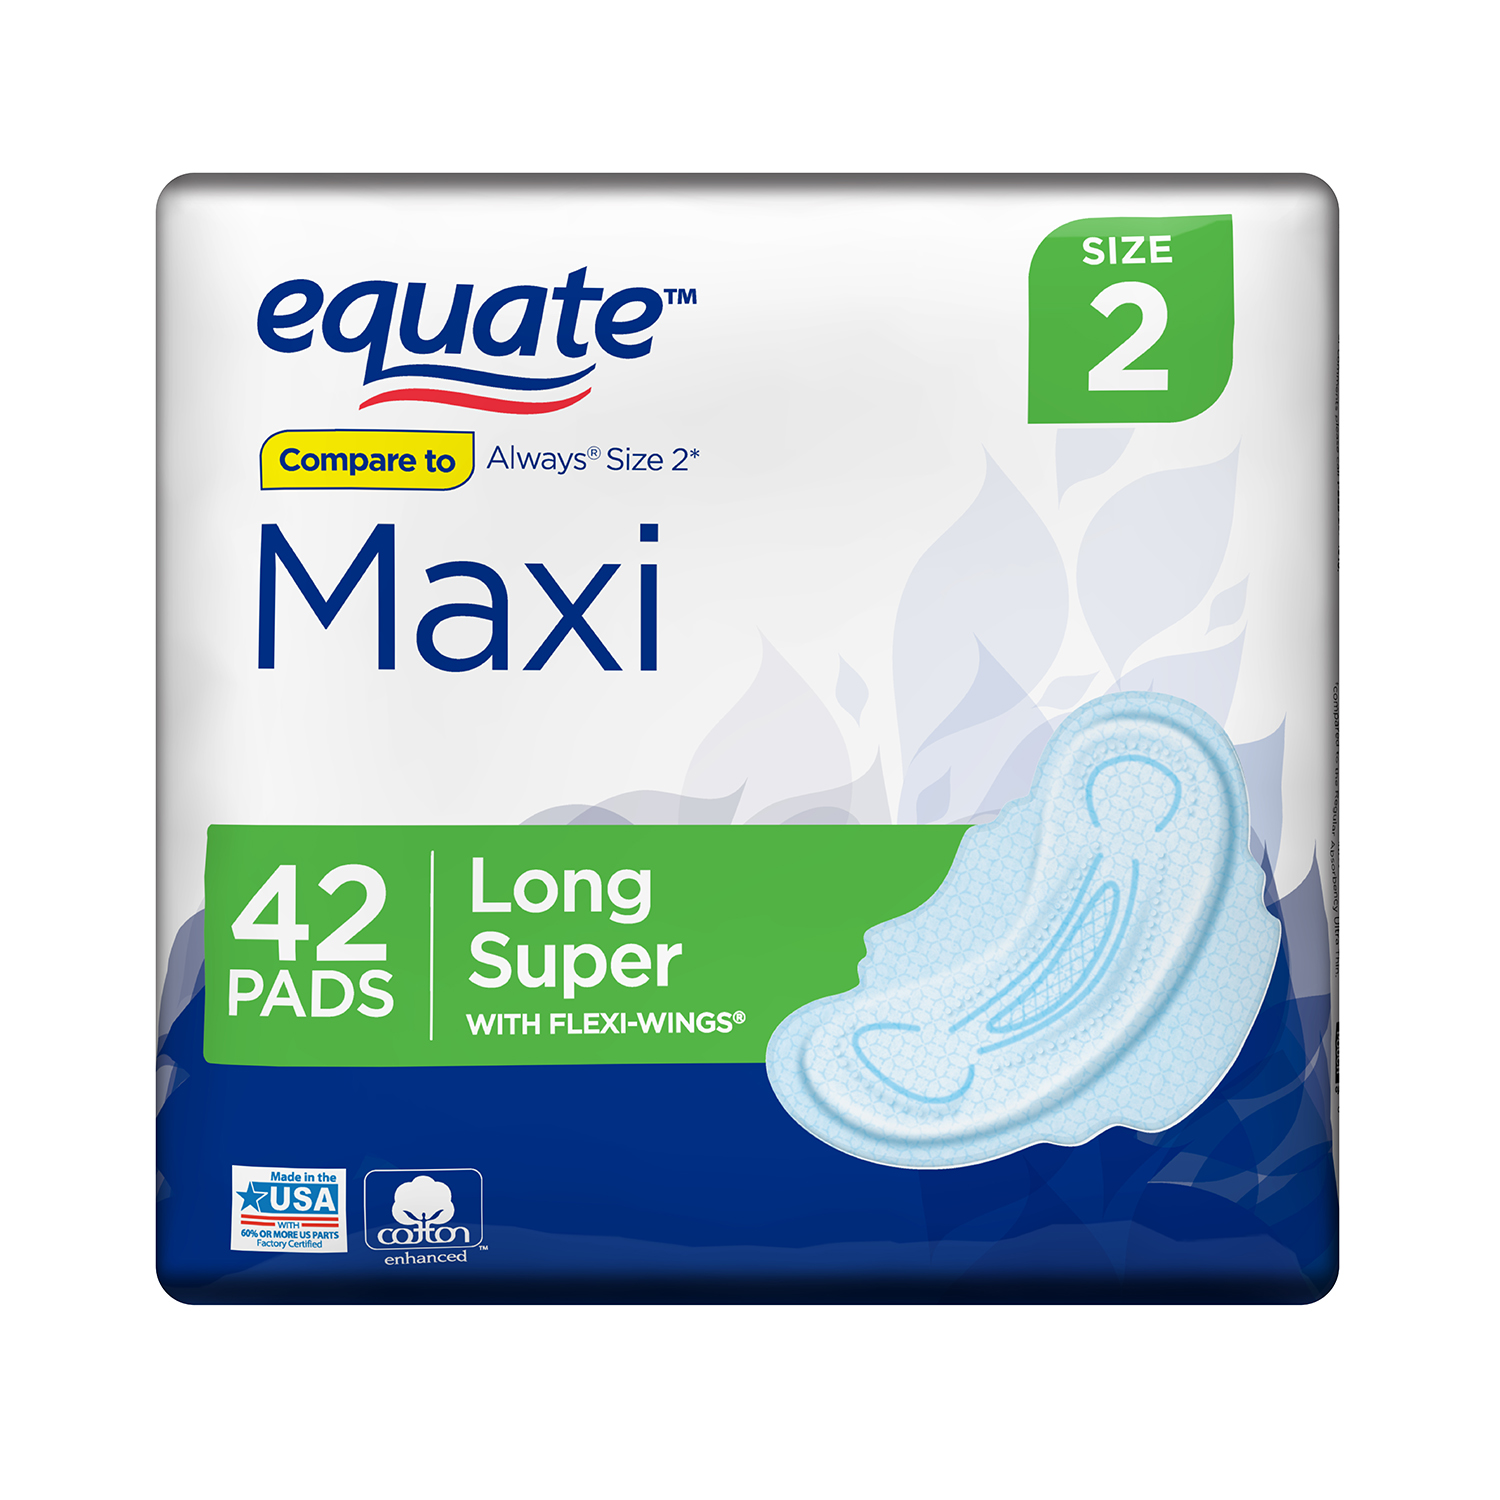 Equate Maxi Pads with Flexi-Wings, Long, Super, 42 Count, Size 2